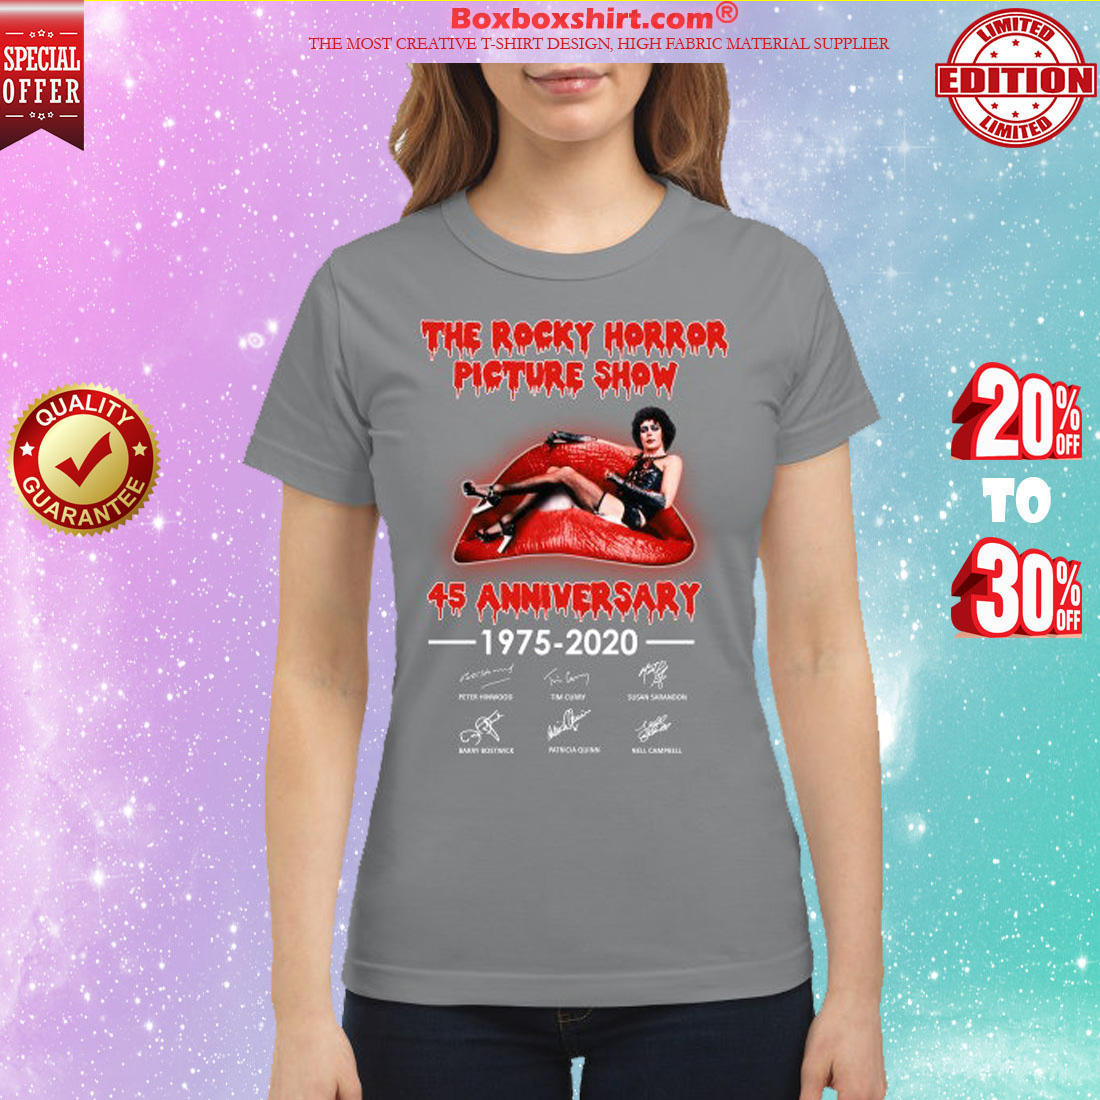 The Rocky horror picture show 45 anniversary classic shirt